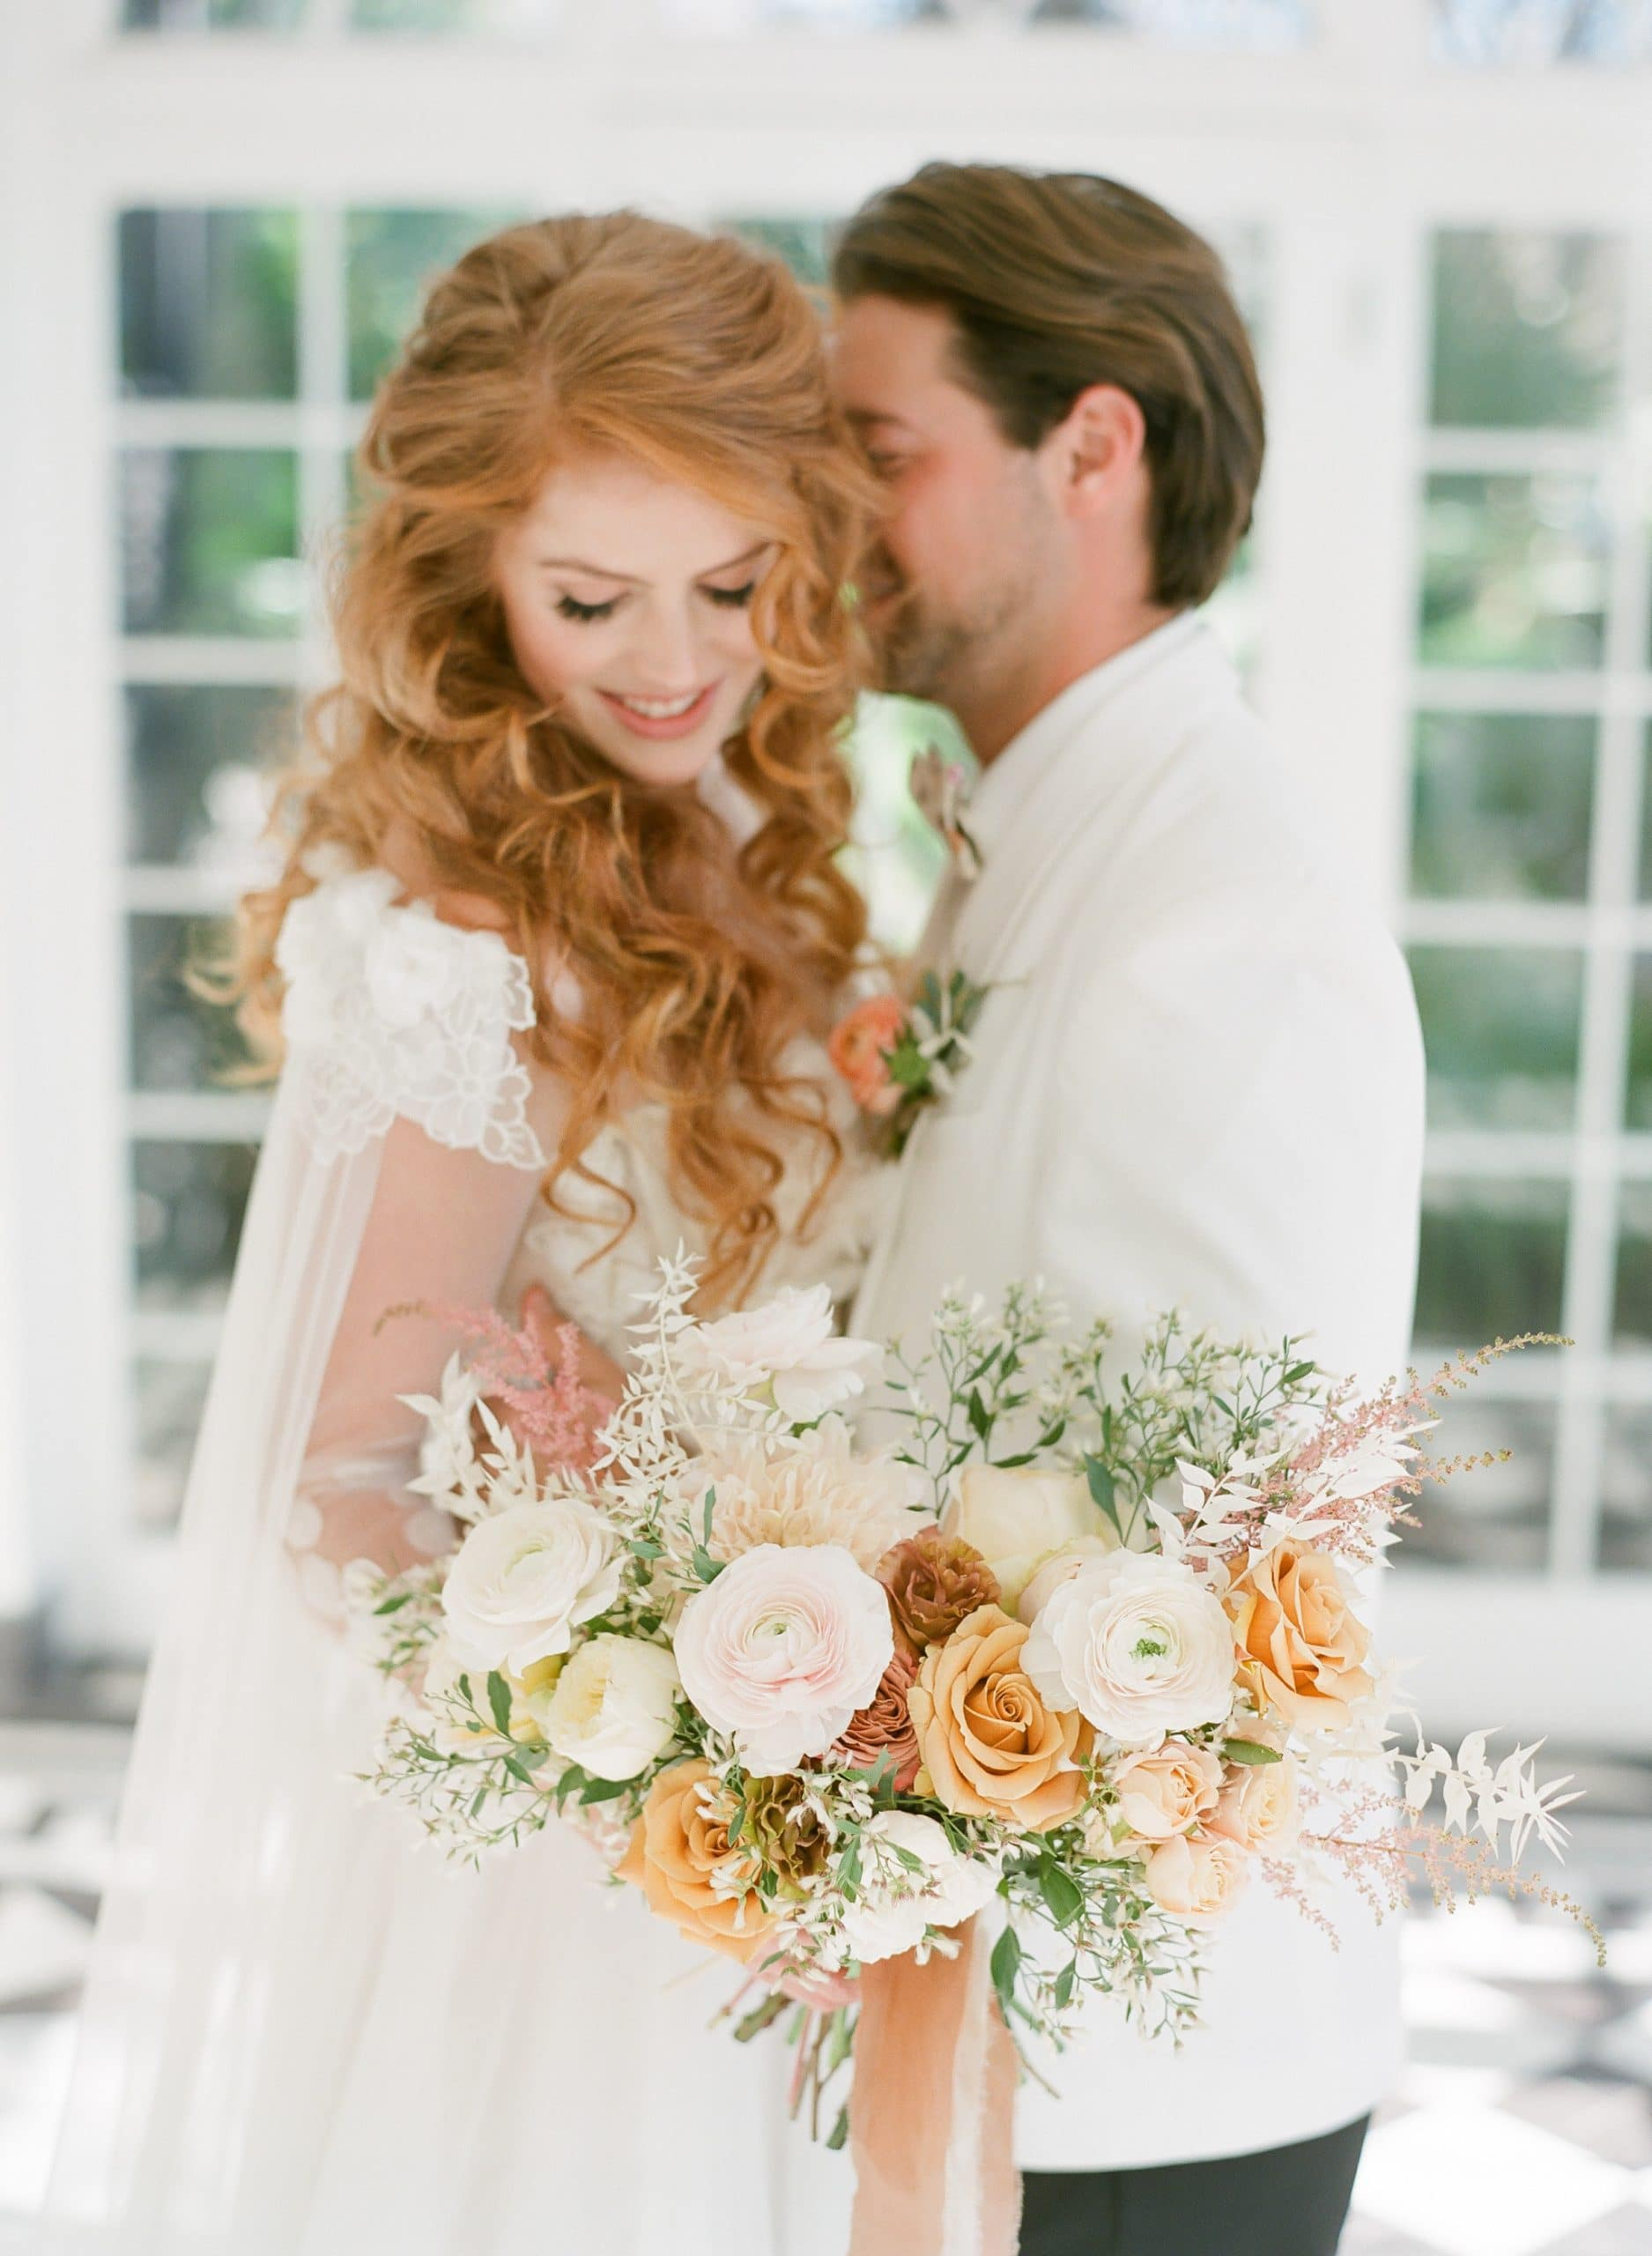 VintageBash, one of the best wedding florists and events company in Toronto